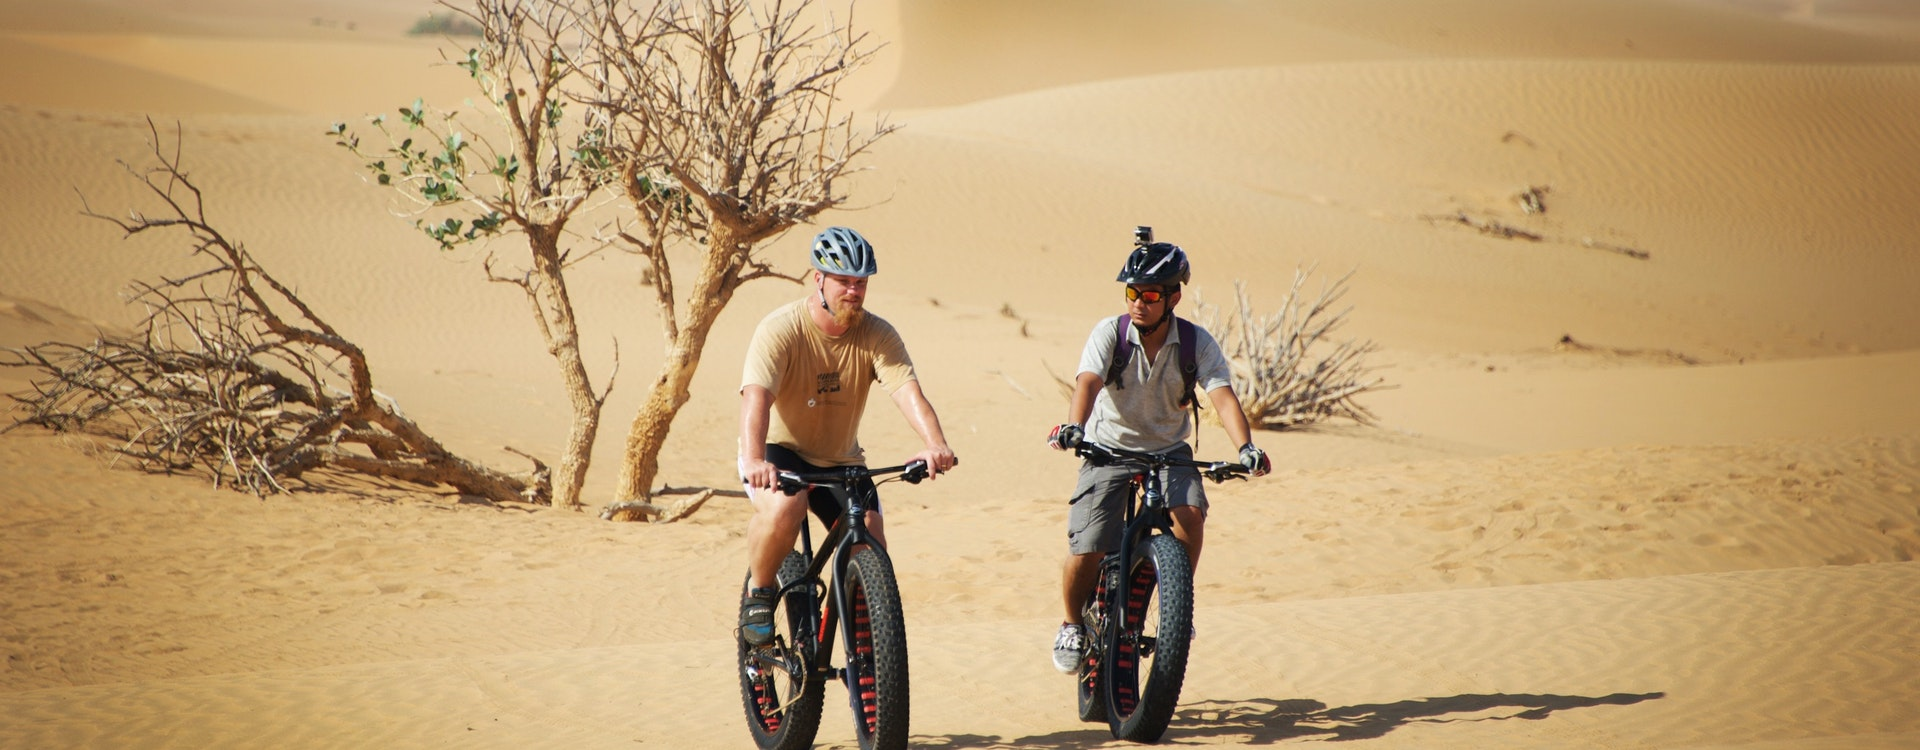 adventure desert safaris fat bike